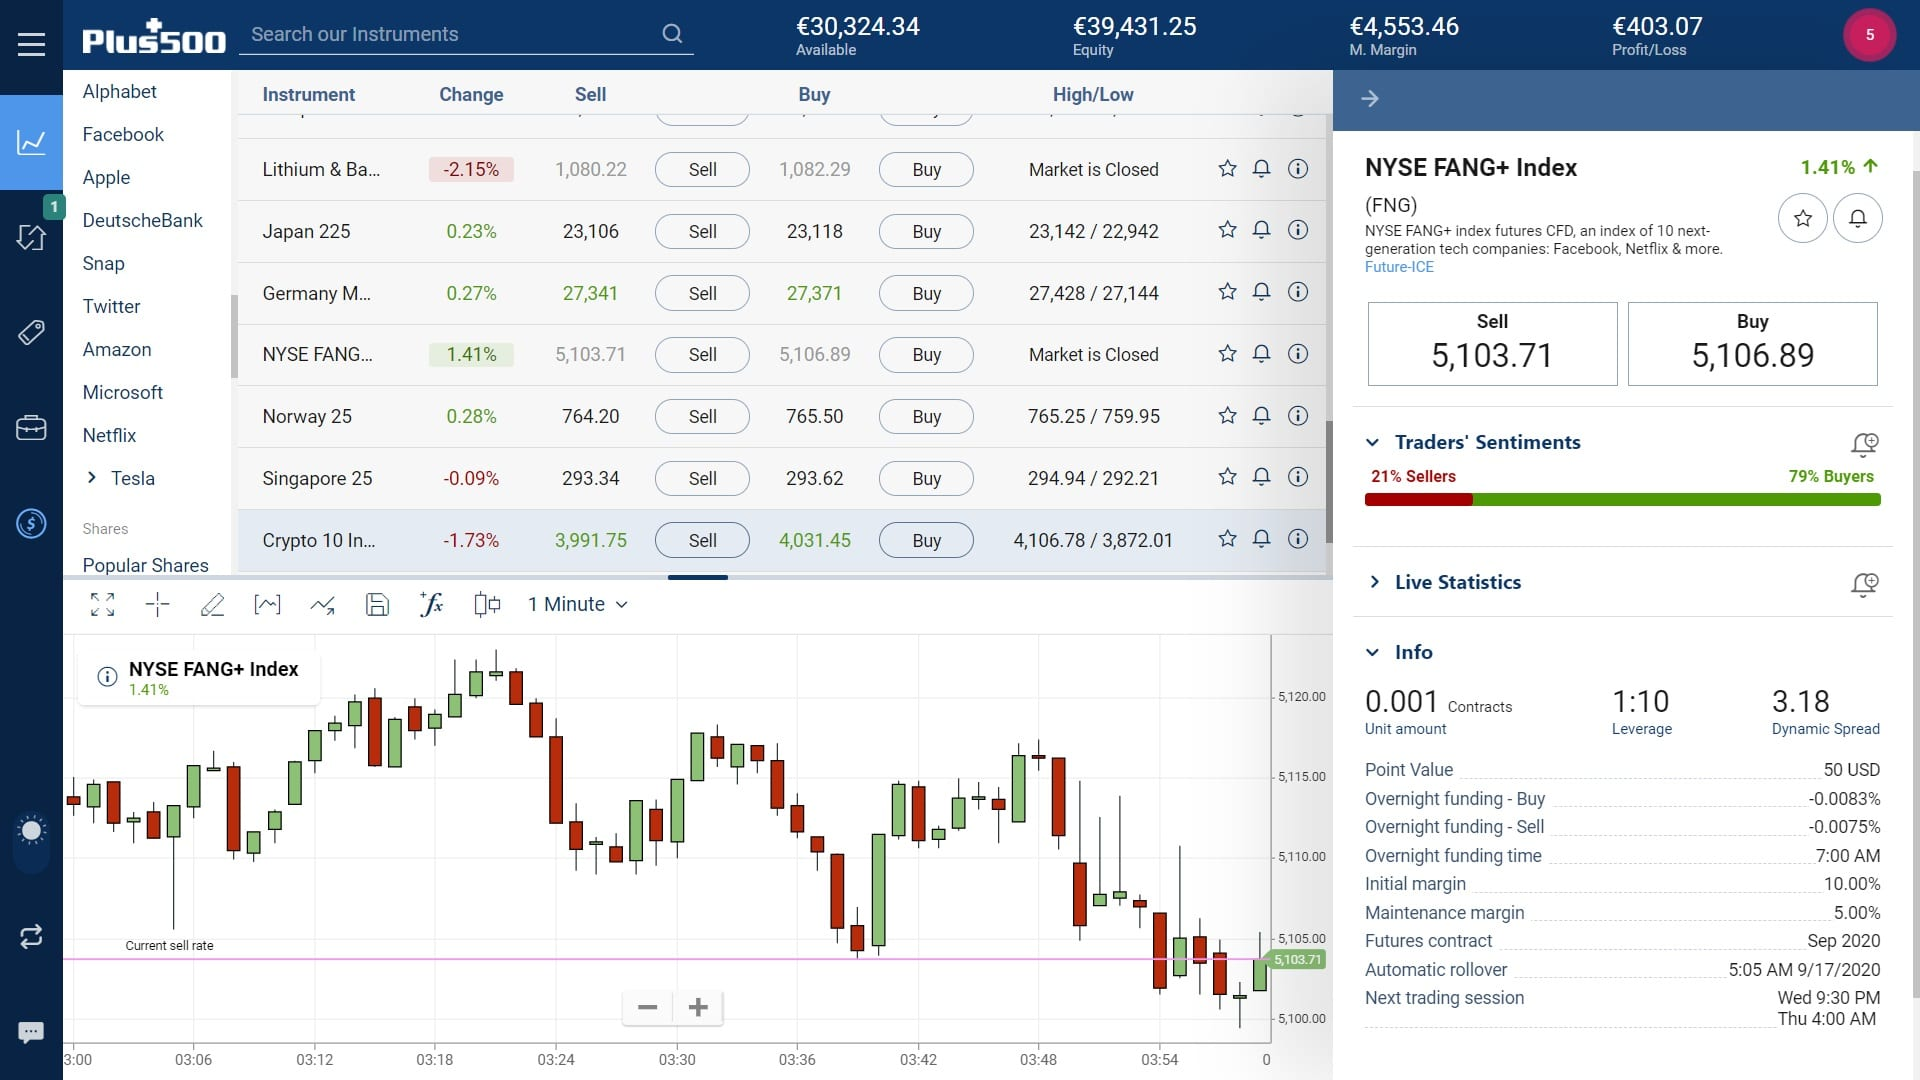 NYSE FANG+ Index on Plus500's WebTrader platform